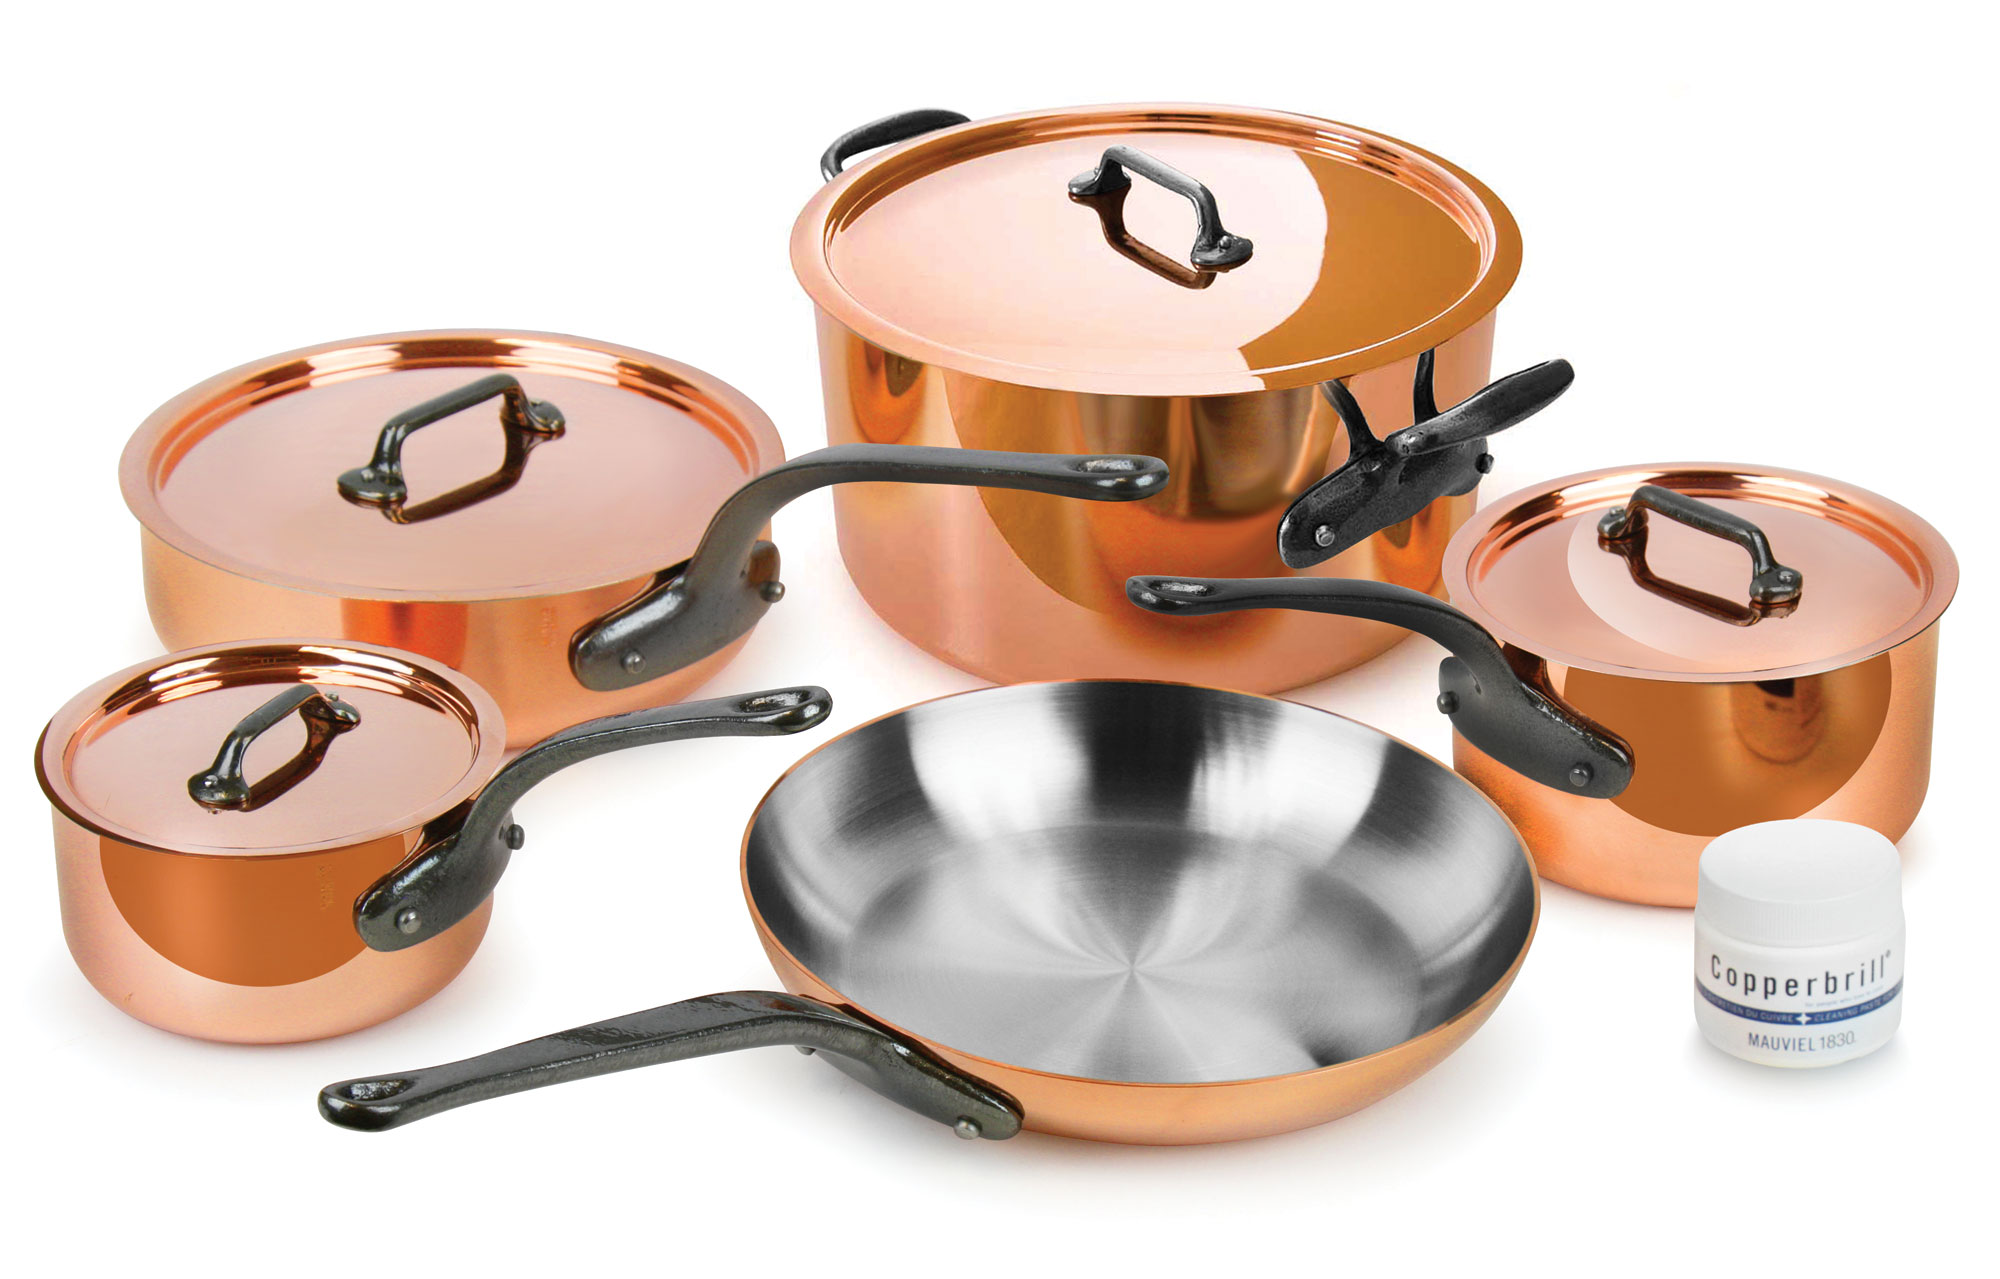 Mauviel M Heritage 250c Copper Cookware Set 9 Piece